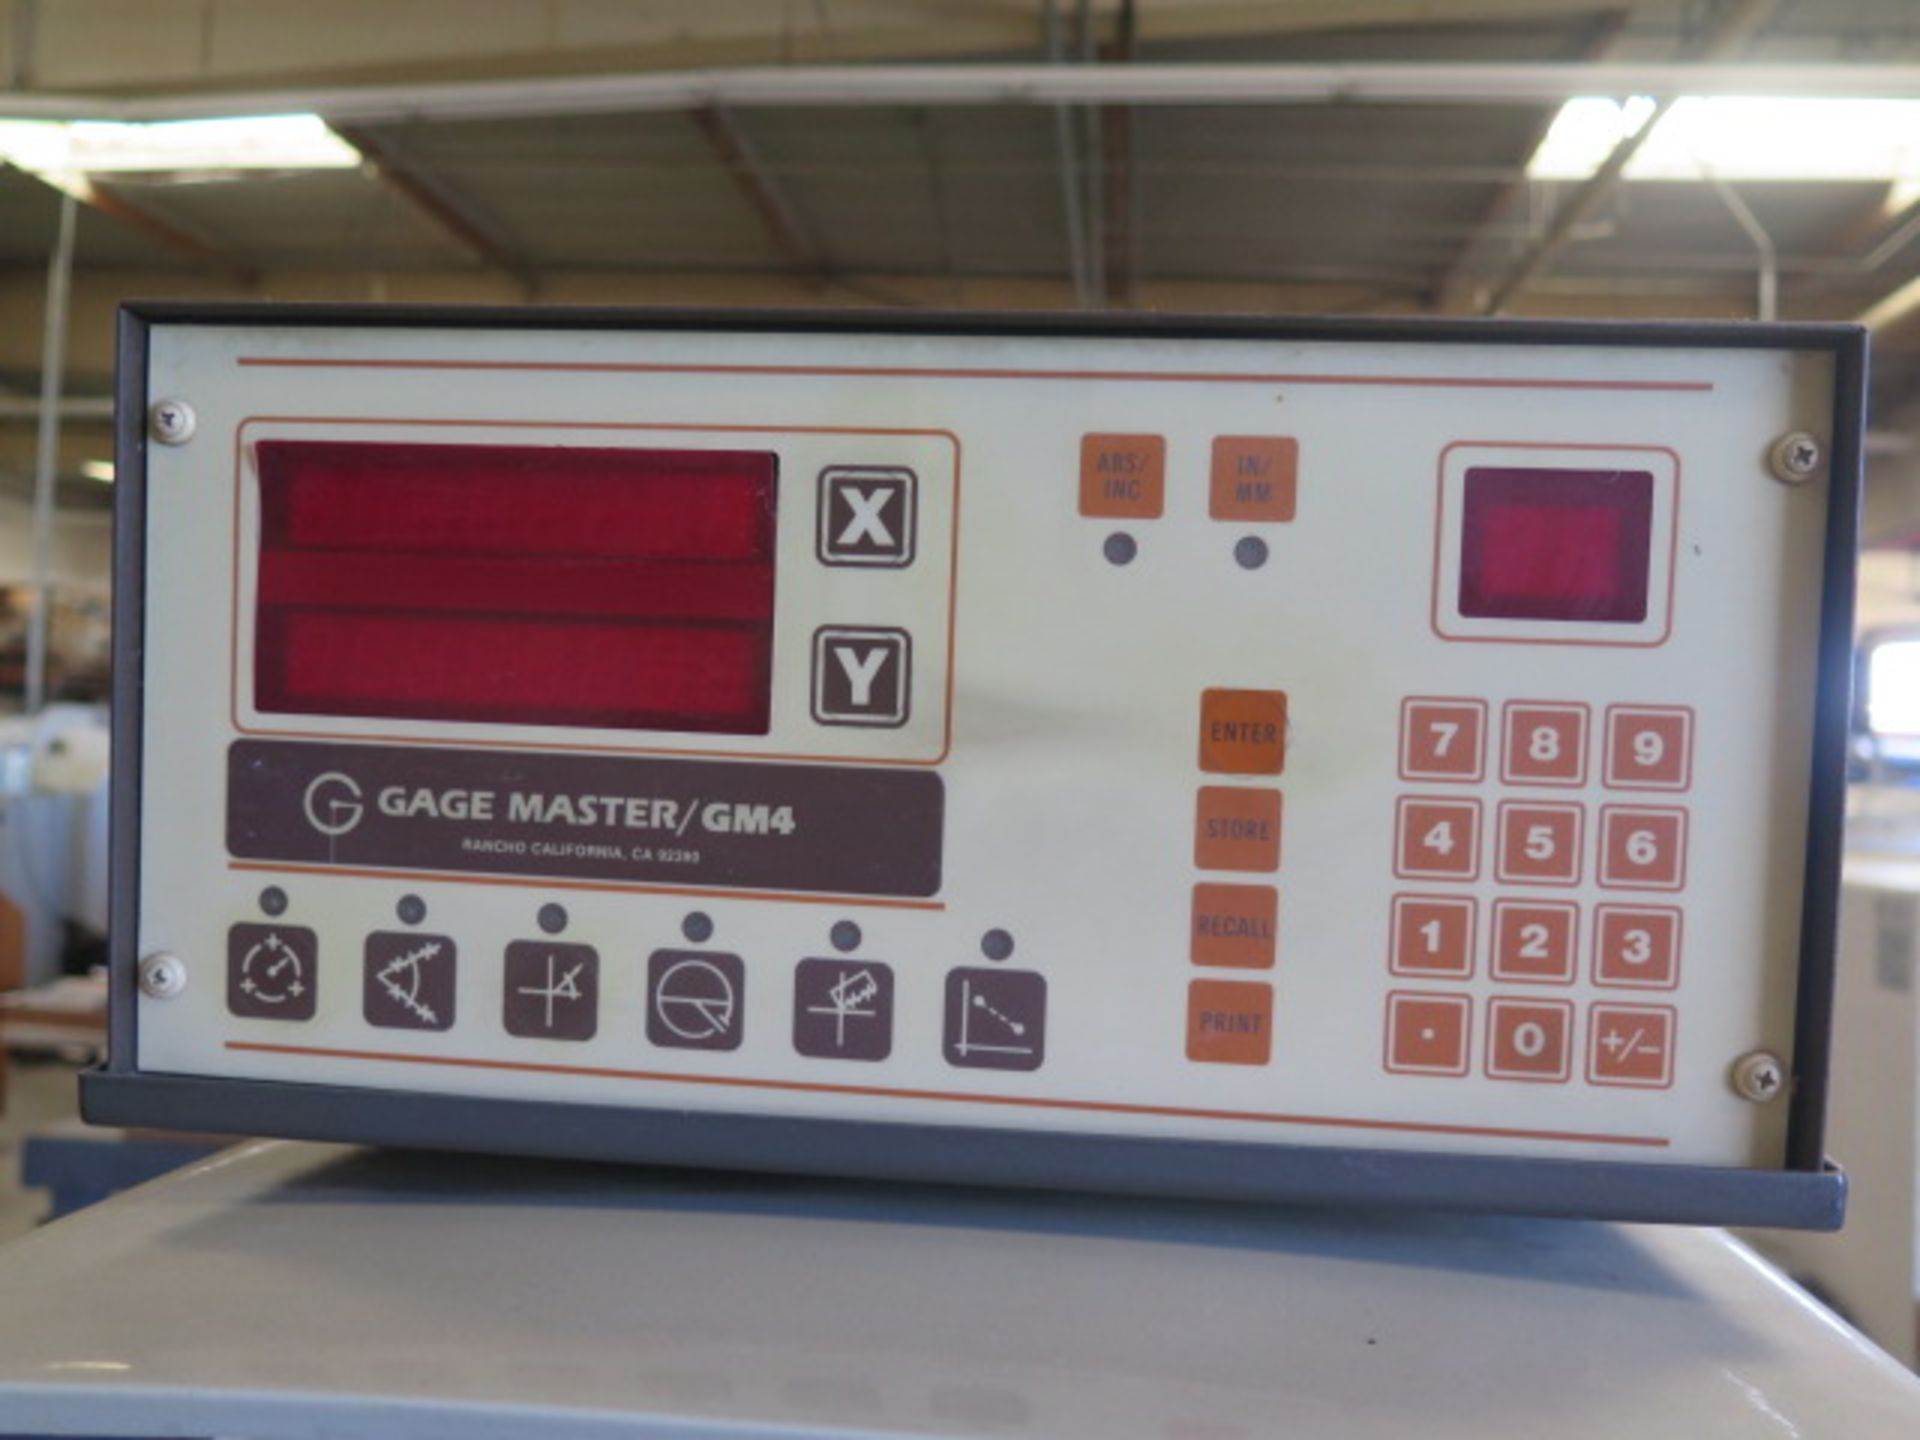 """Gage Master Series 20 13"""" Optical Comparator w/ Gage Master GM4 DRO, Dig Angular Readout, SOLD AS IS - Image 5 of 10"""